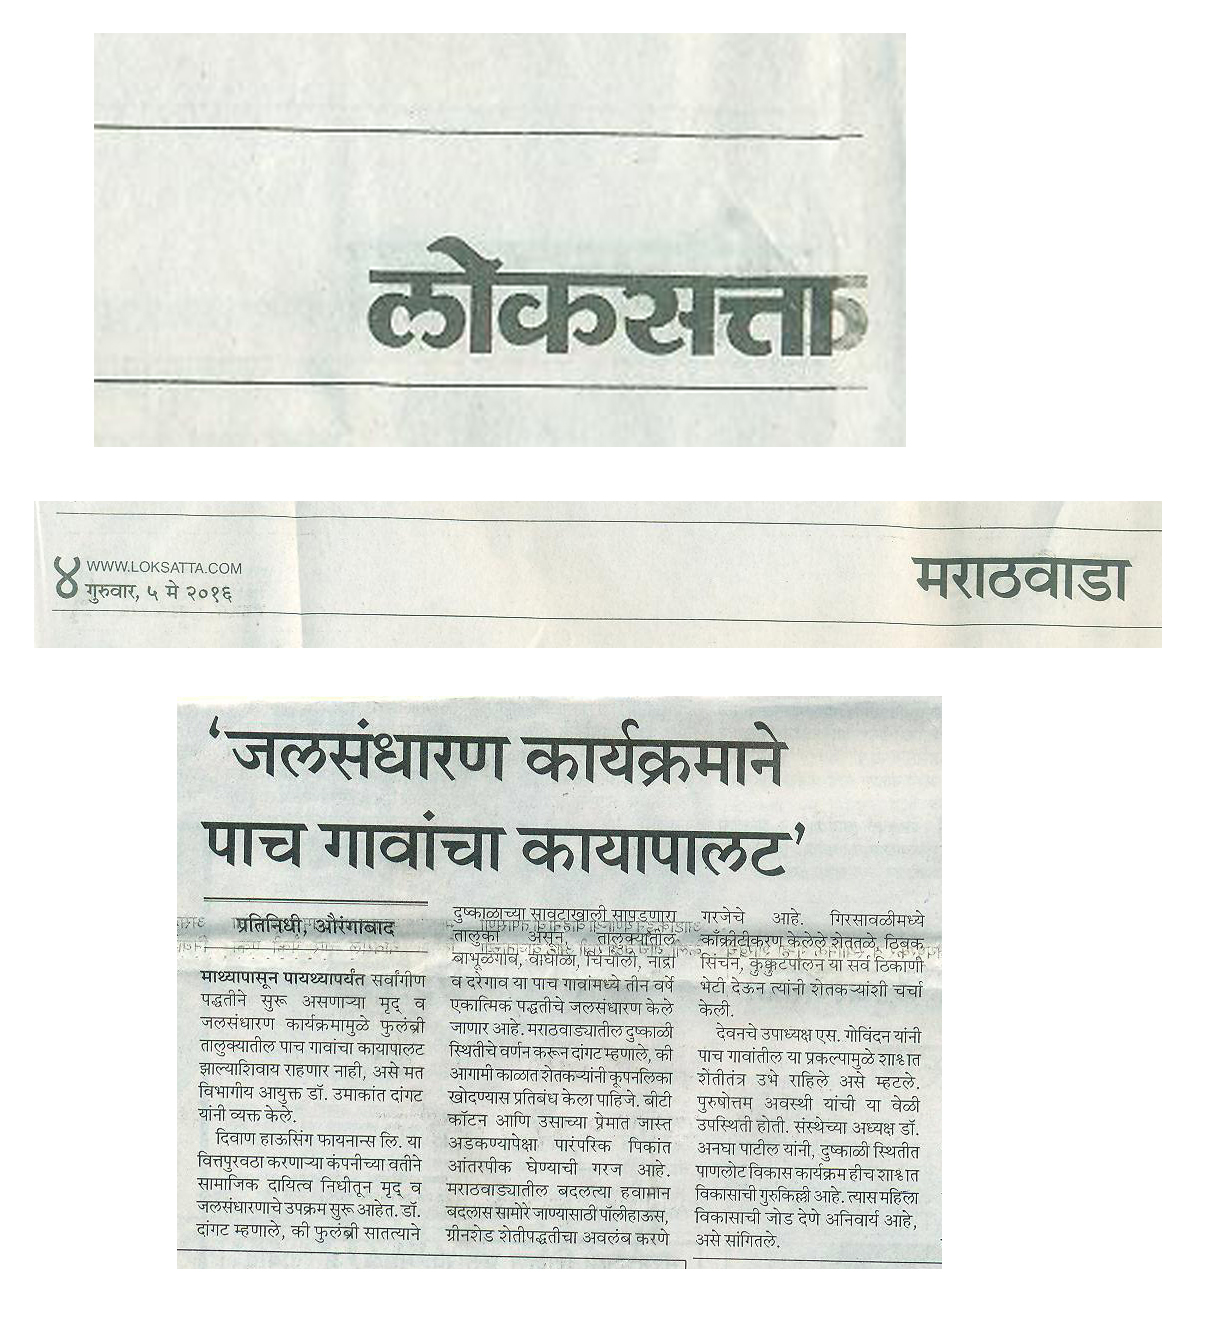 Loksatta news clipping.jpg